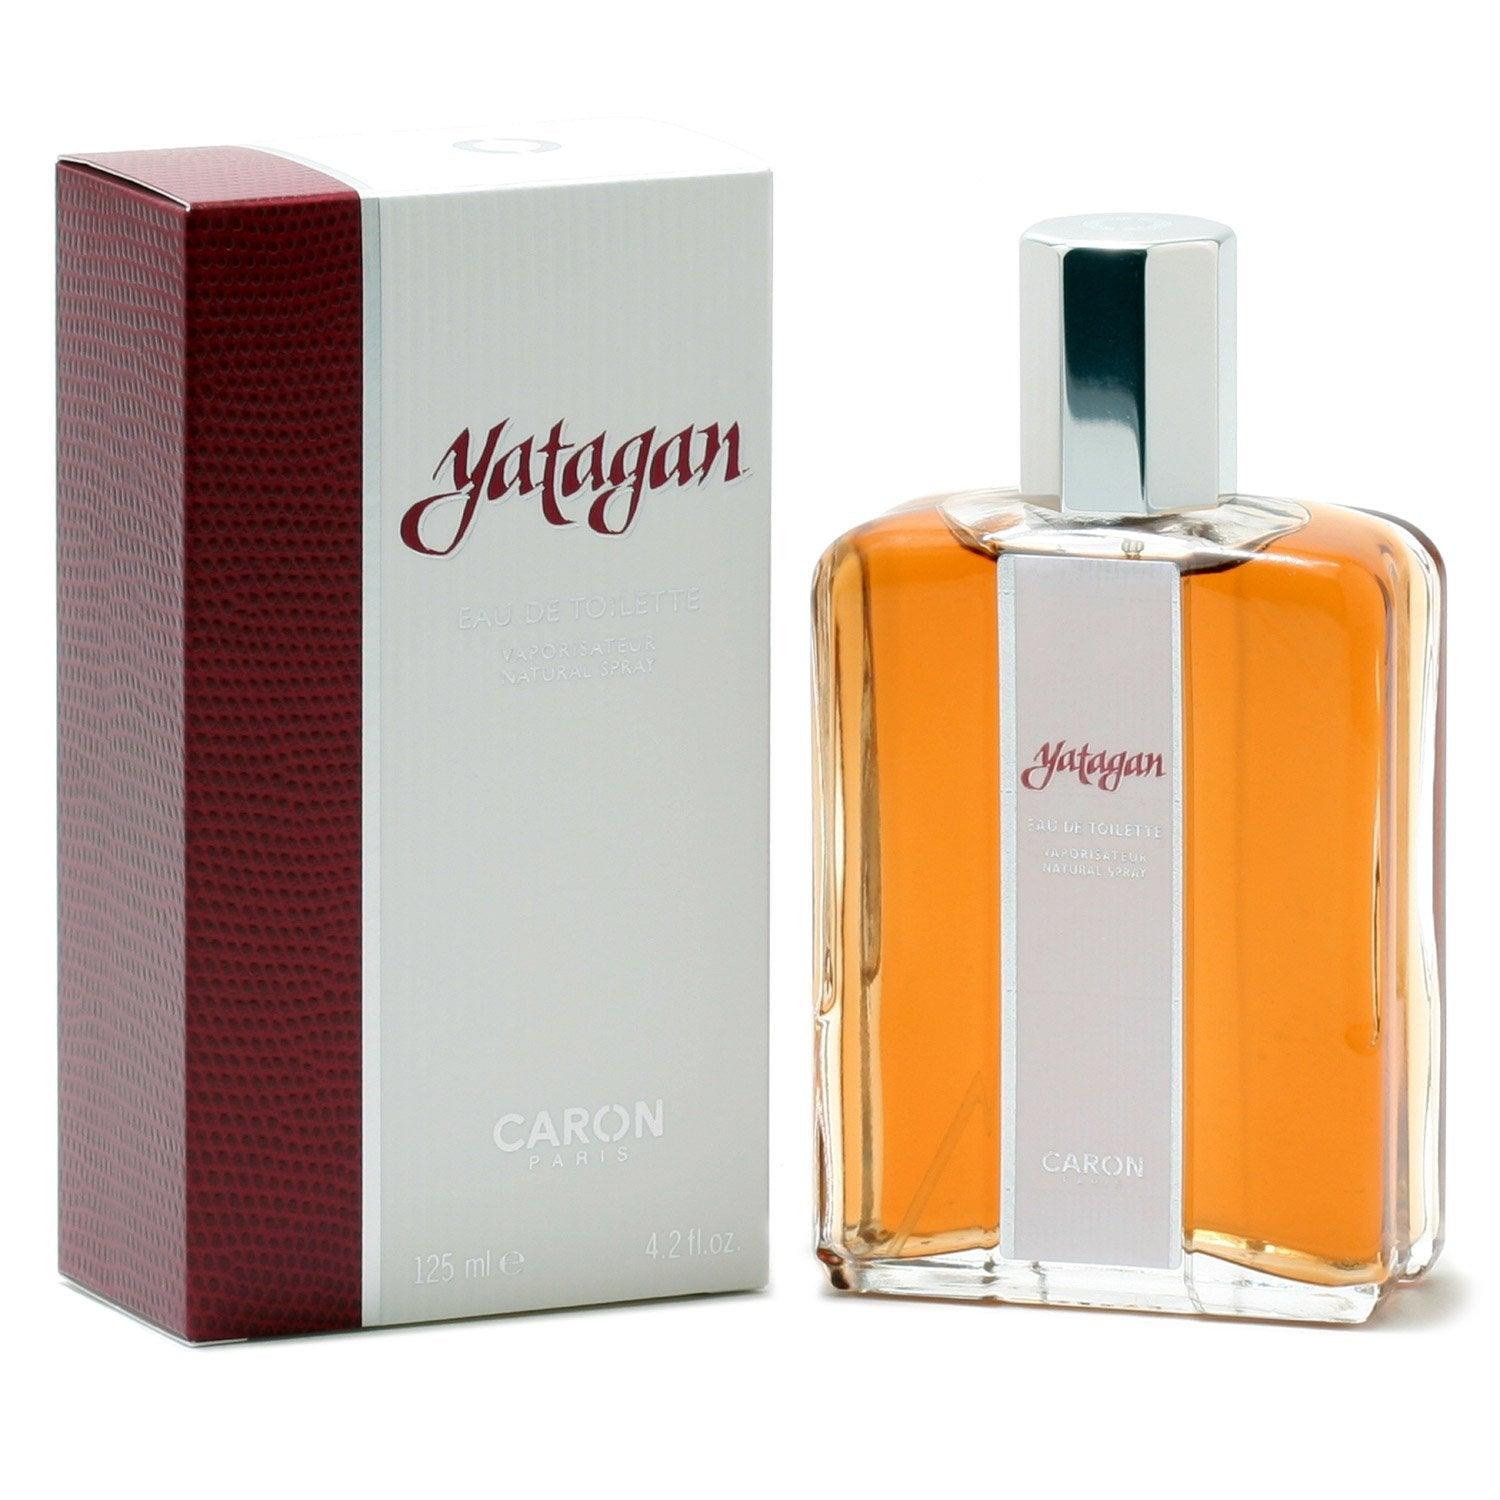 Cologne - YATAGAN FOR MEN BY CARON - EAU DE TOILETTE SPRAY, 4.2 OZ